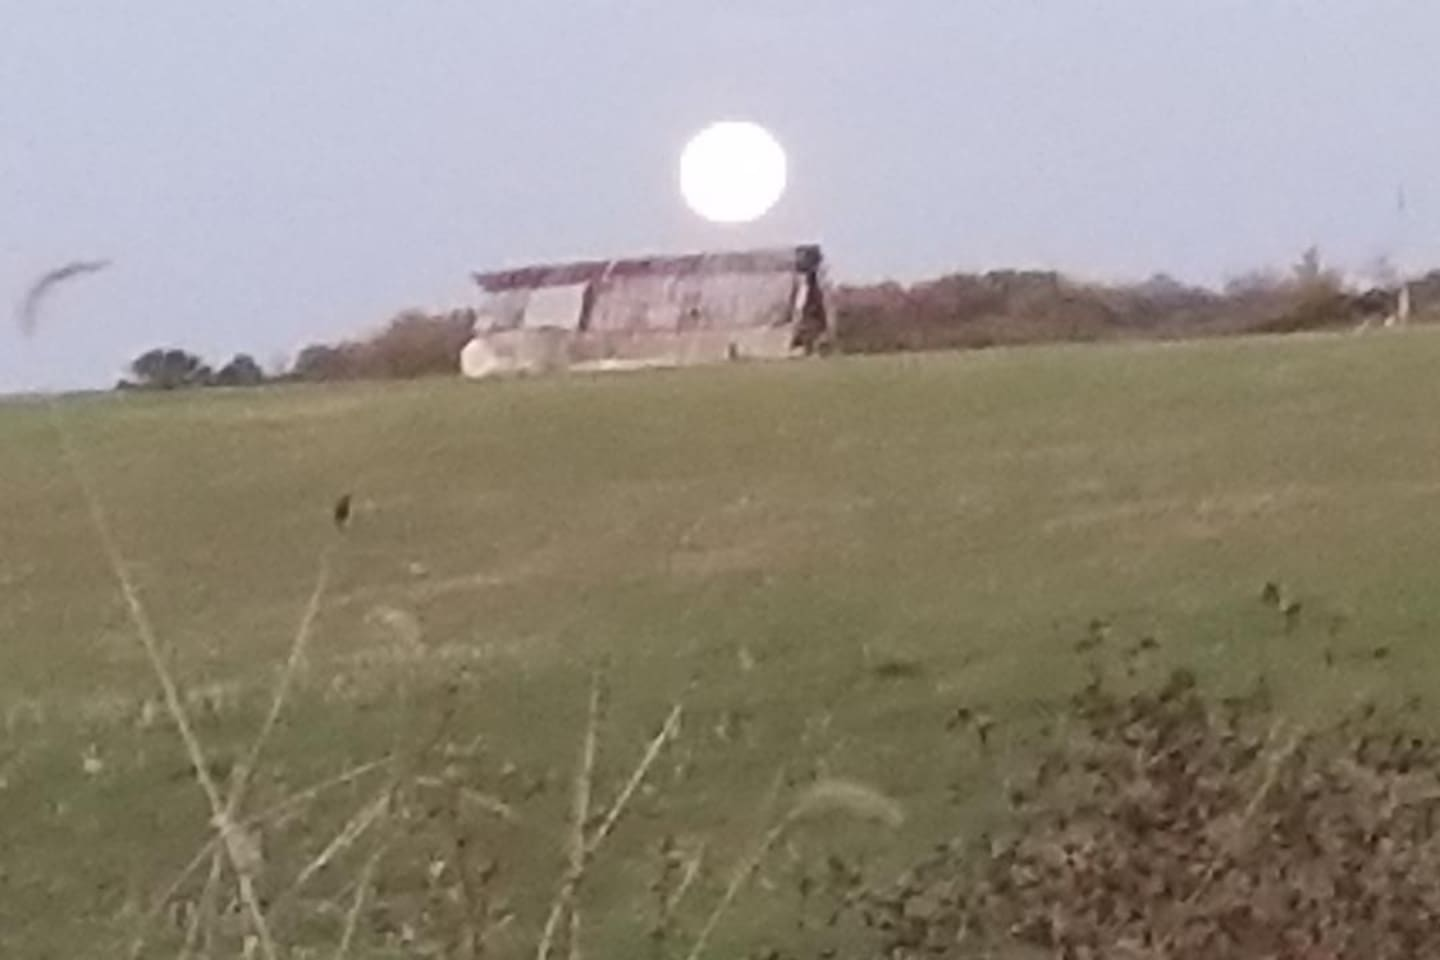 Moon. rise over old cattle barn, no more cattle. Just an old wood barn . Reclaiming the timber .